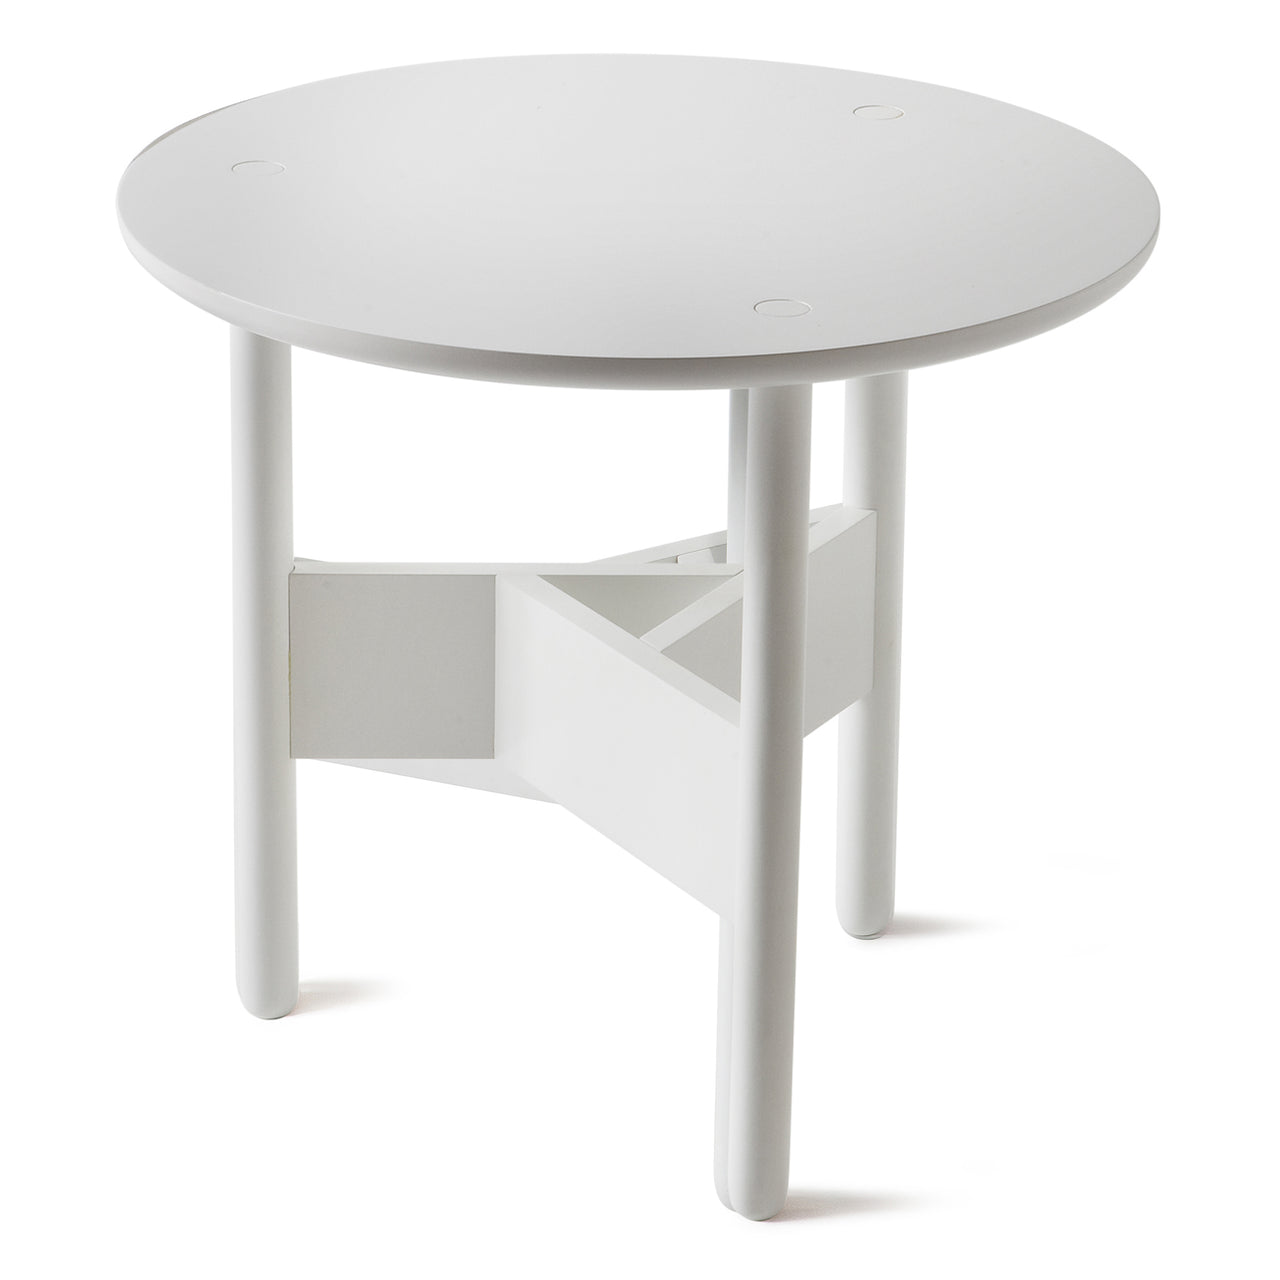 Orbital Coffee Table: Large + Signal White